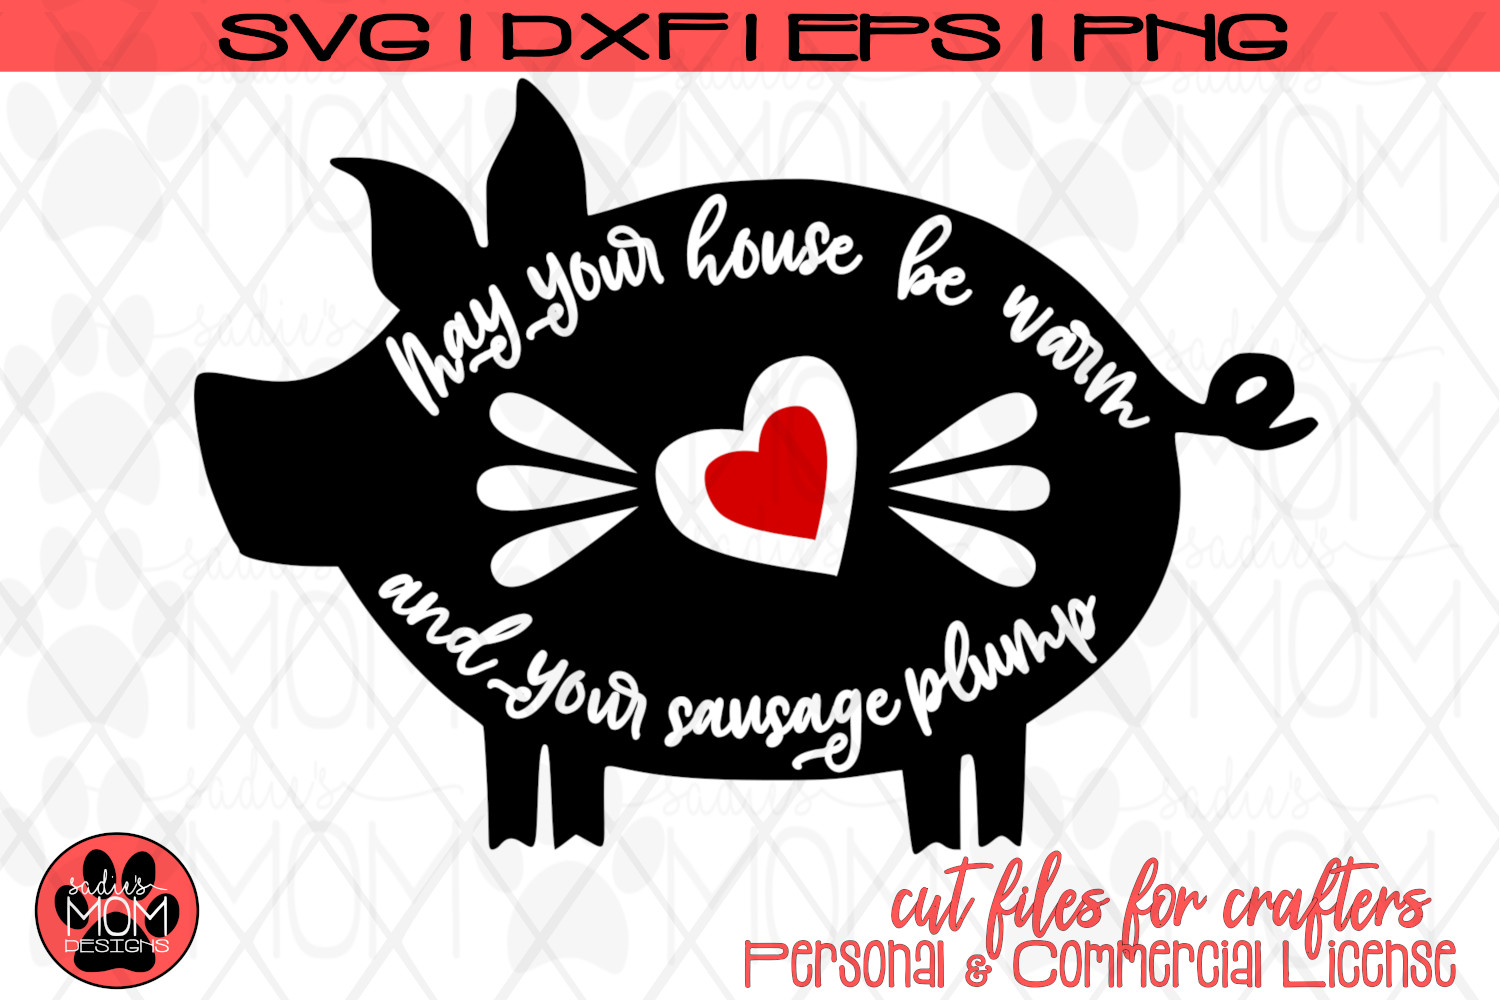 Pig Blessing - May Your House be Warm and Your Sausage Plump example image 3